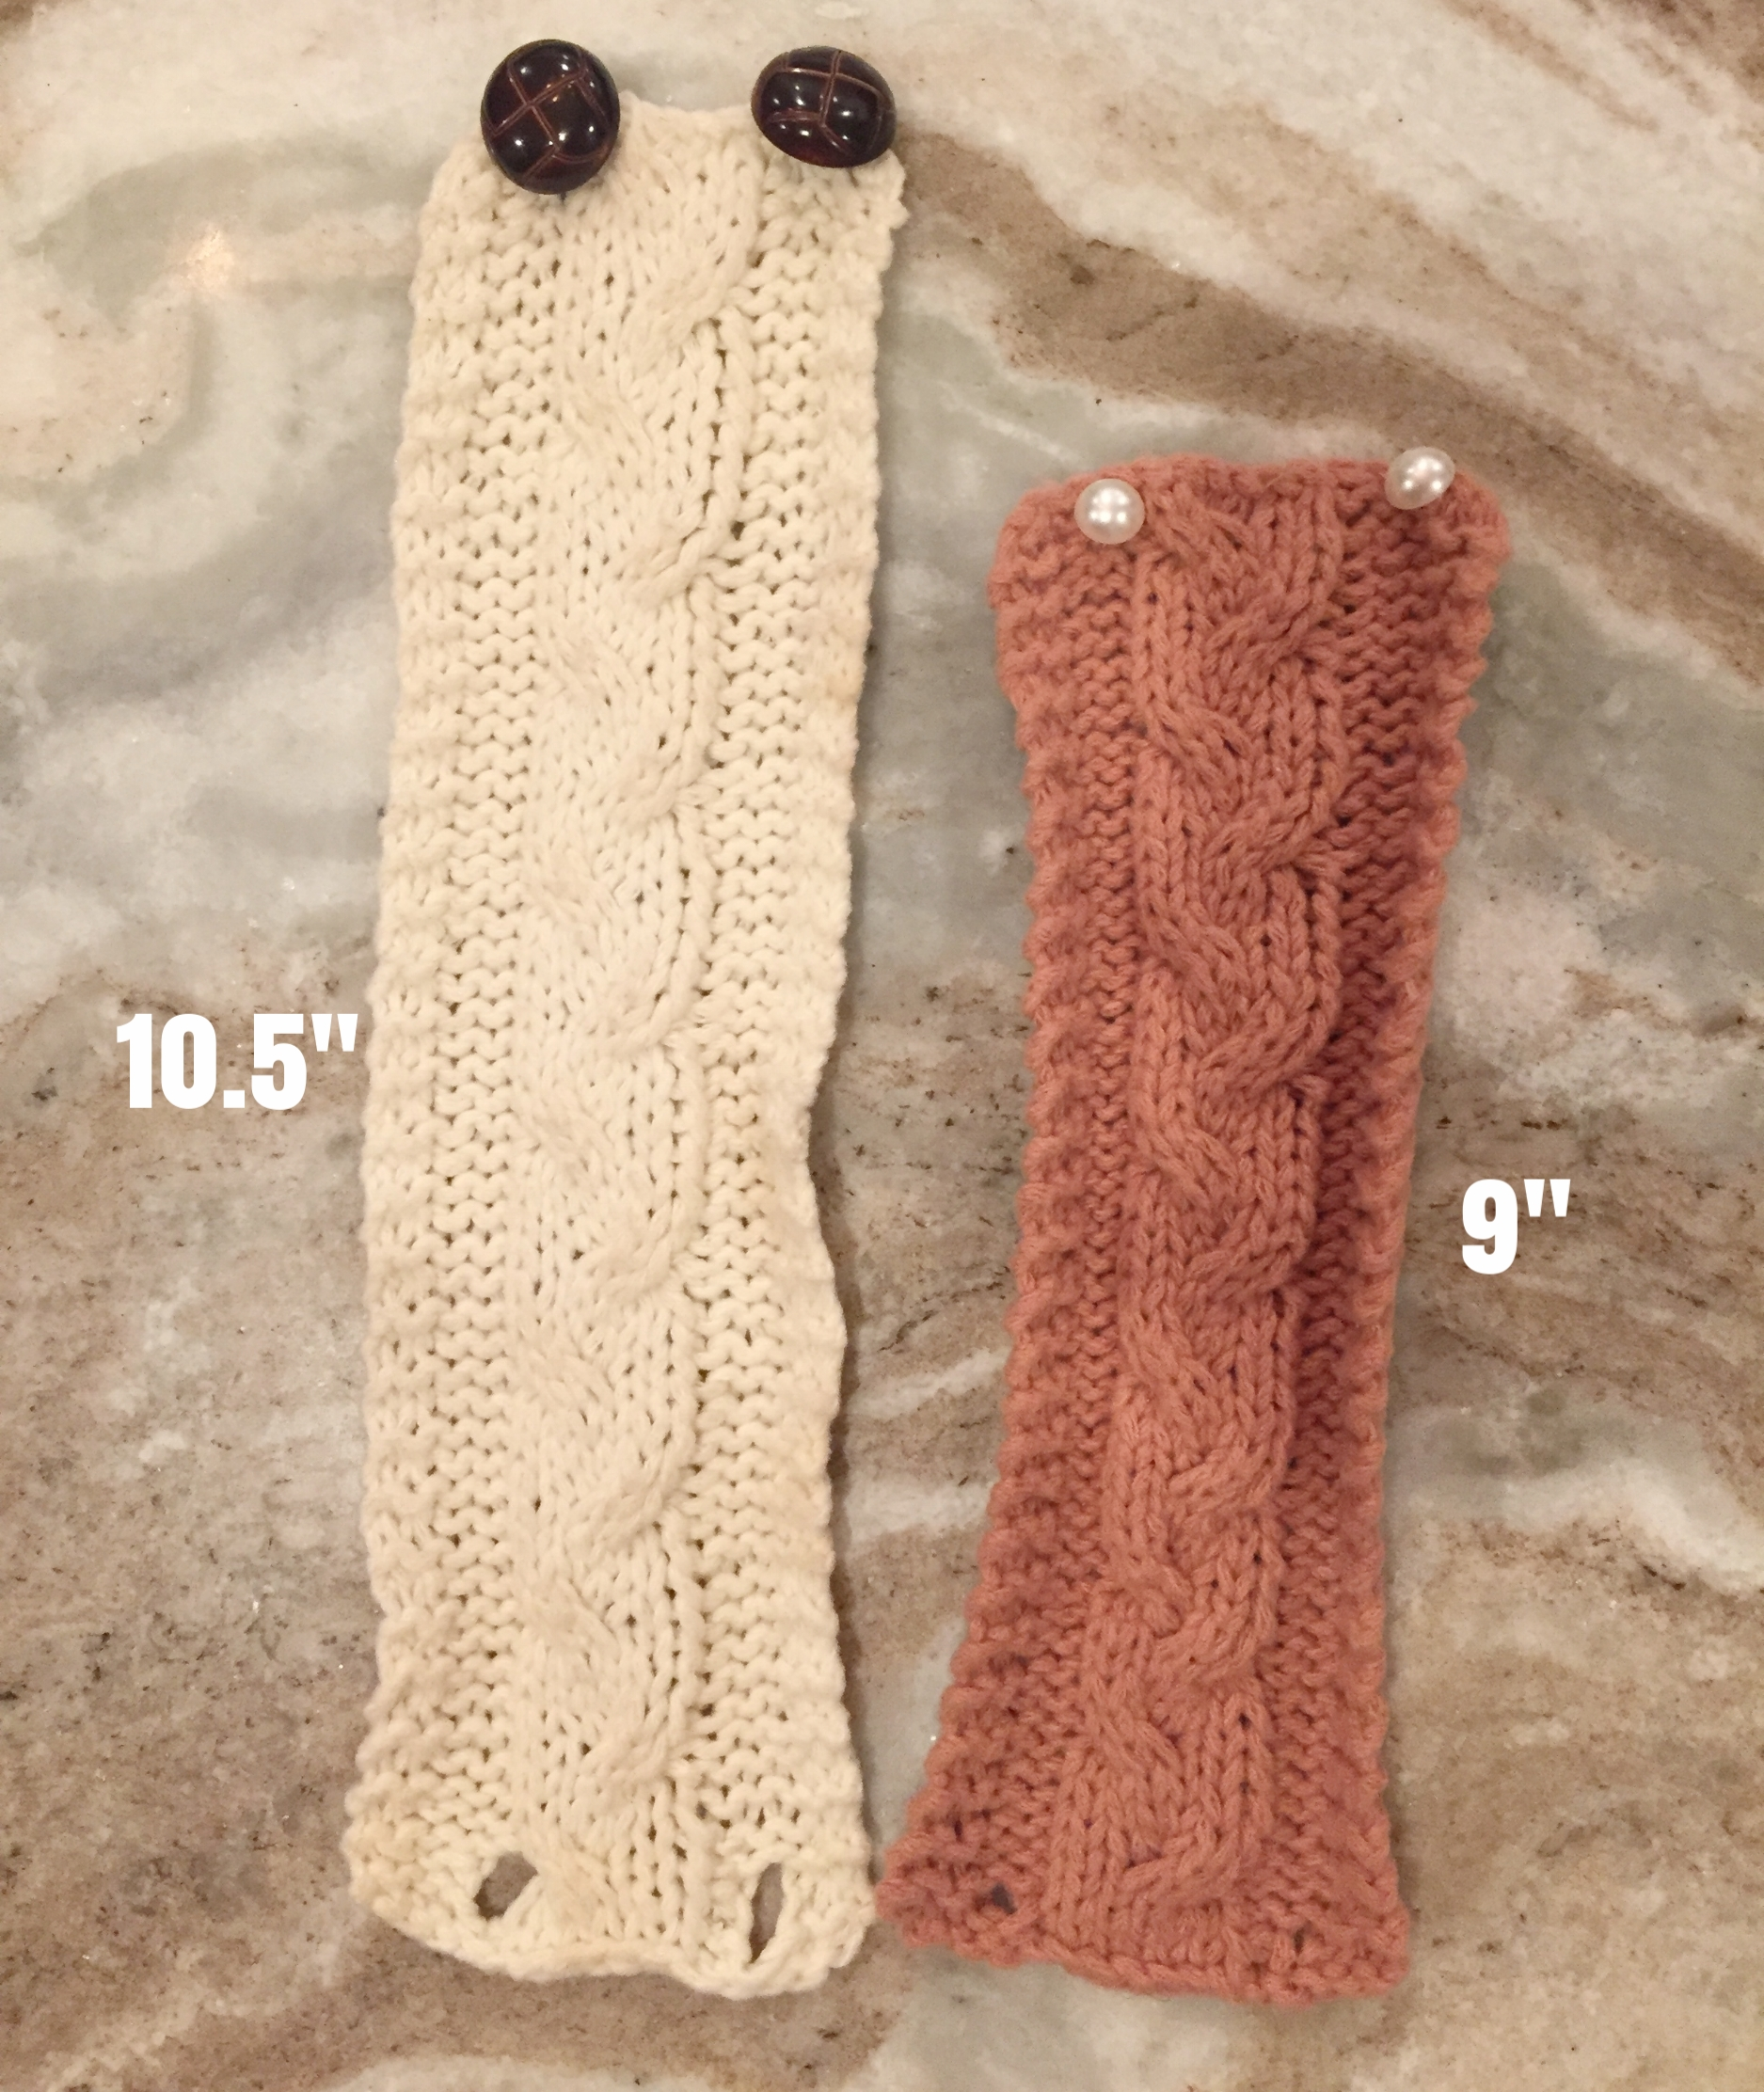 Make in any size - Knit until cozy fits around desired mug when stretched slightly (if it's too loose, it could slide down)